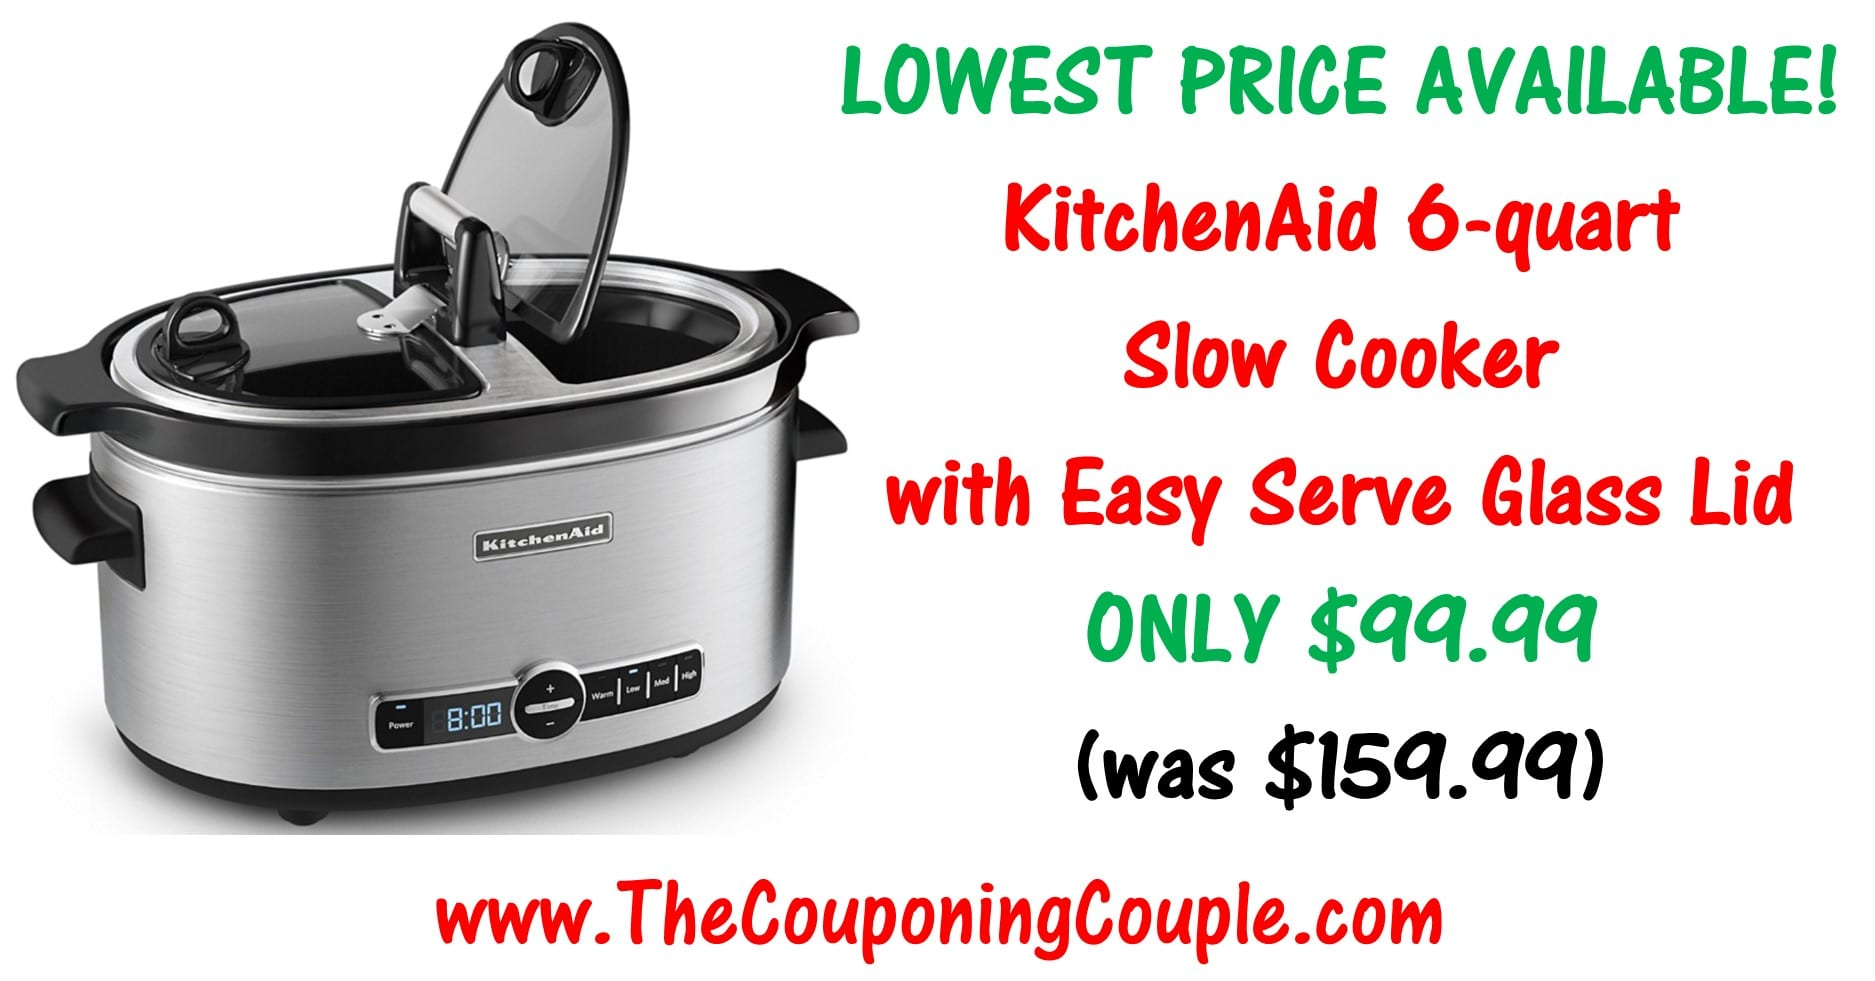 kitchen aid slow cooker eat in sets kitchenaid 6 quart with easy serve glass lid